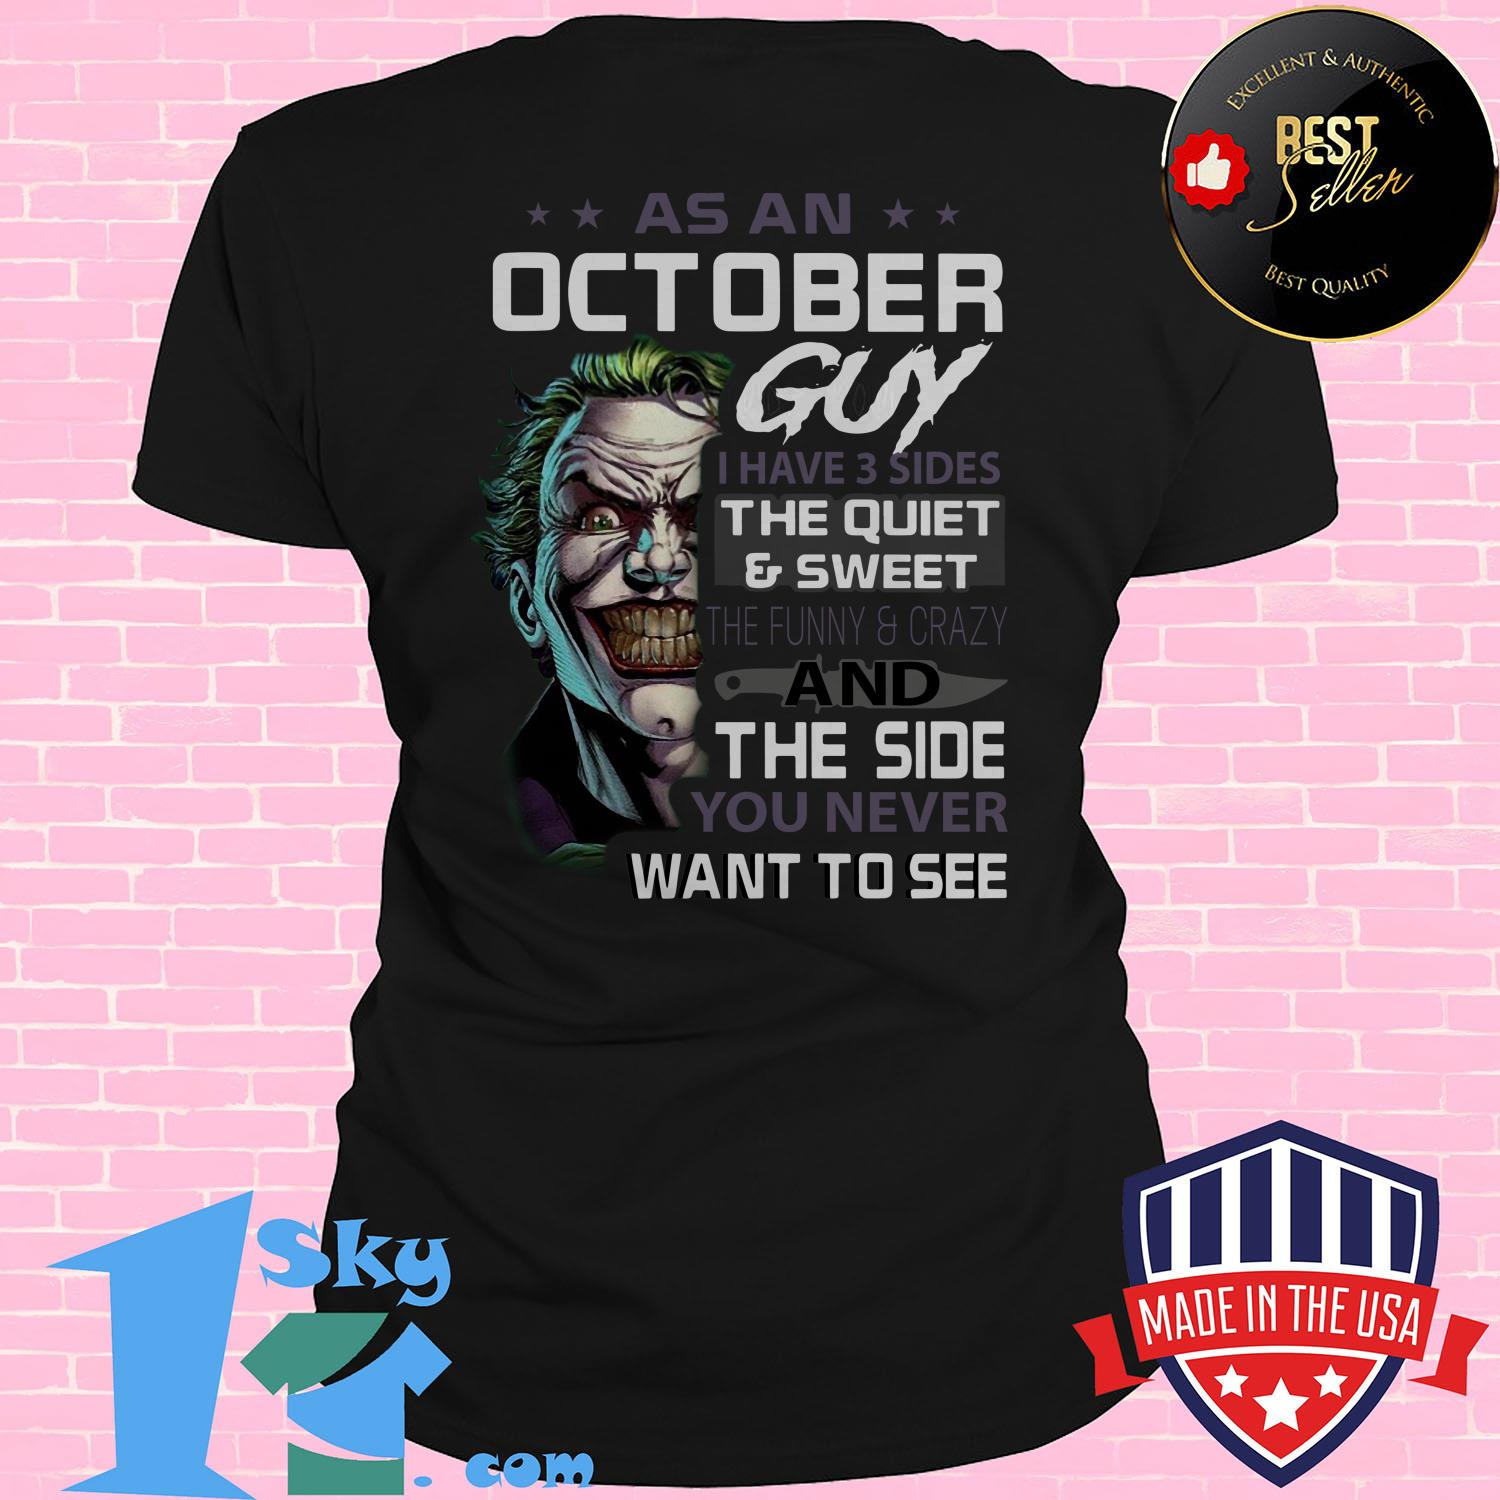 premium joker as an october guy i have 3 sides the quiet sweet the funny crazy and the side you never want to see ladies tee 1 - Premium Joker As An October Guy I Have 3 Sides The Quiet & Sweet The Funny & Crazy And The Side You Never Want To See shirt